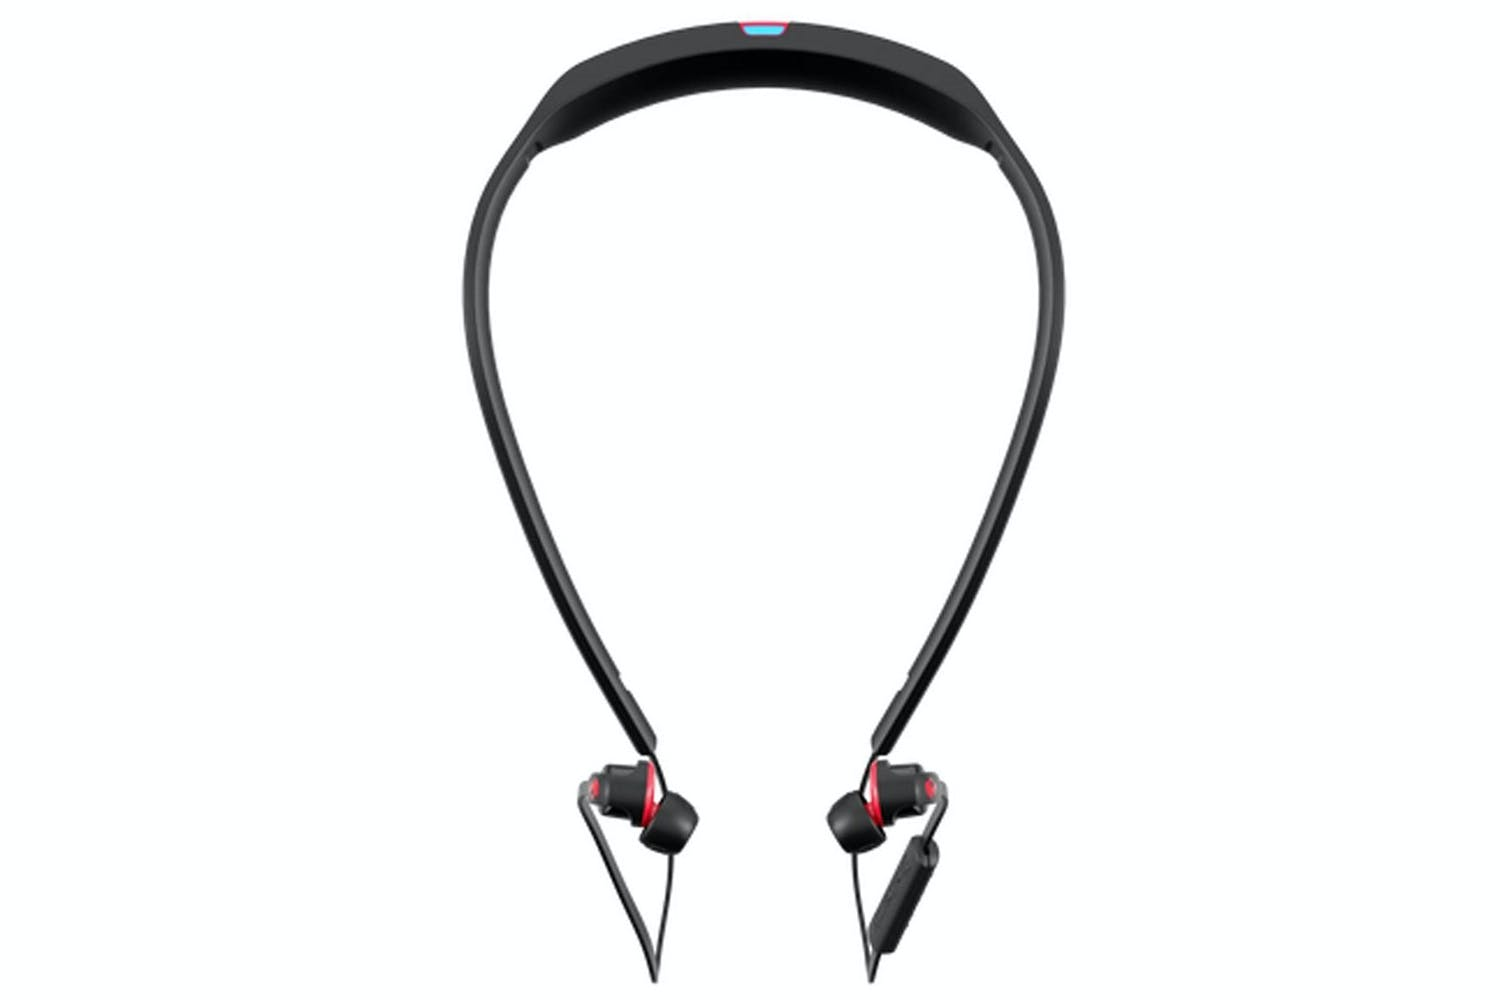 c67f54e487f Skullcandy Smokin' Buds 2 Wireless Earphones | Black & Red | Ireland